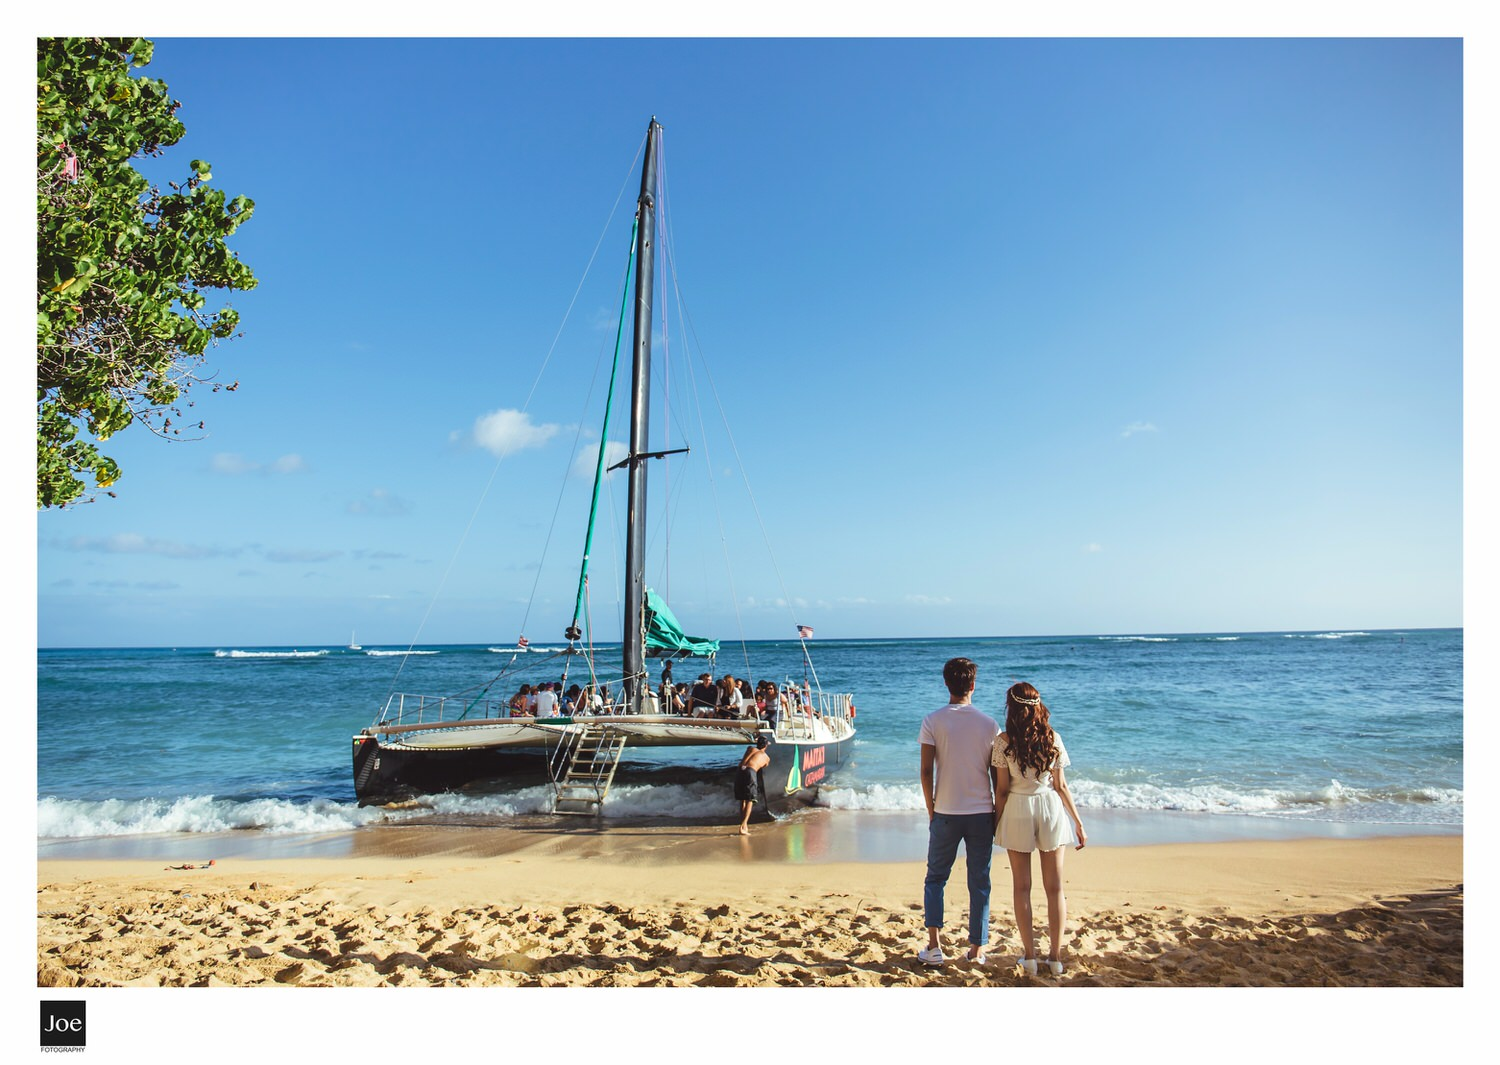 113-maitai-catamaran-hawaii-pre-wedding-tiffany-tony-joe-fotography.jpg